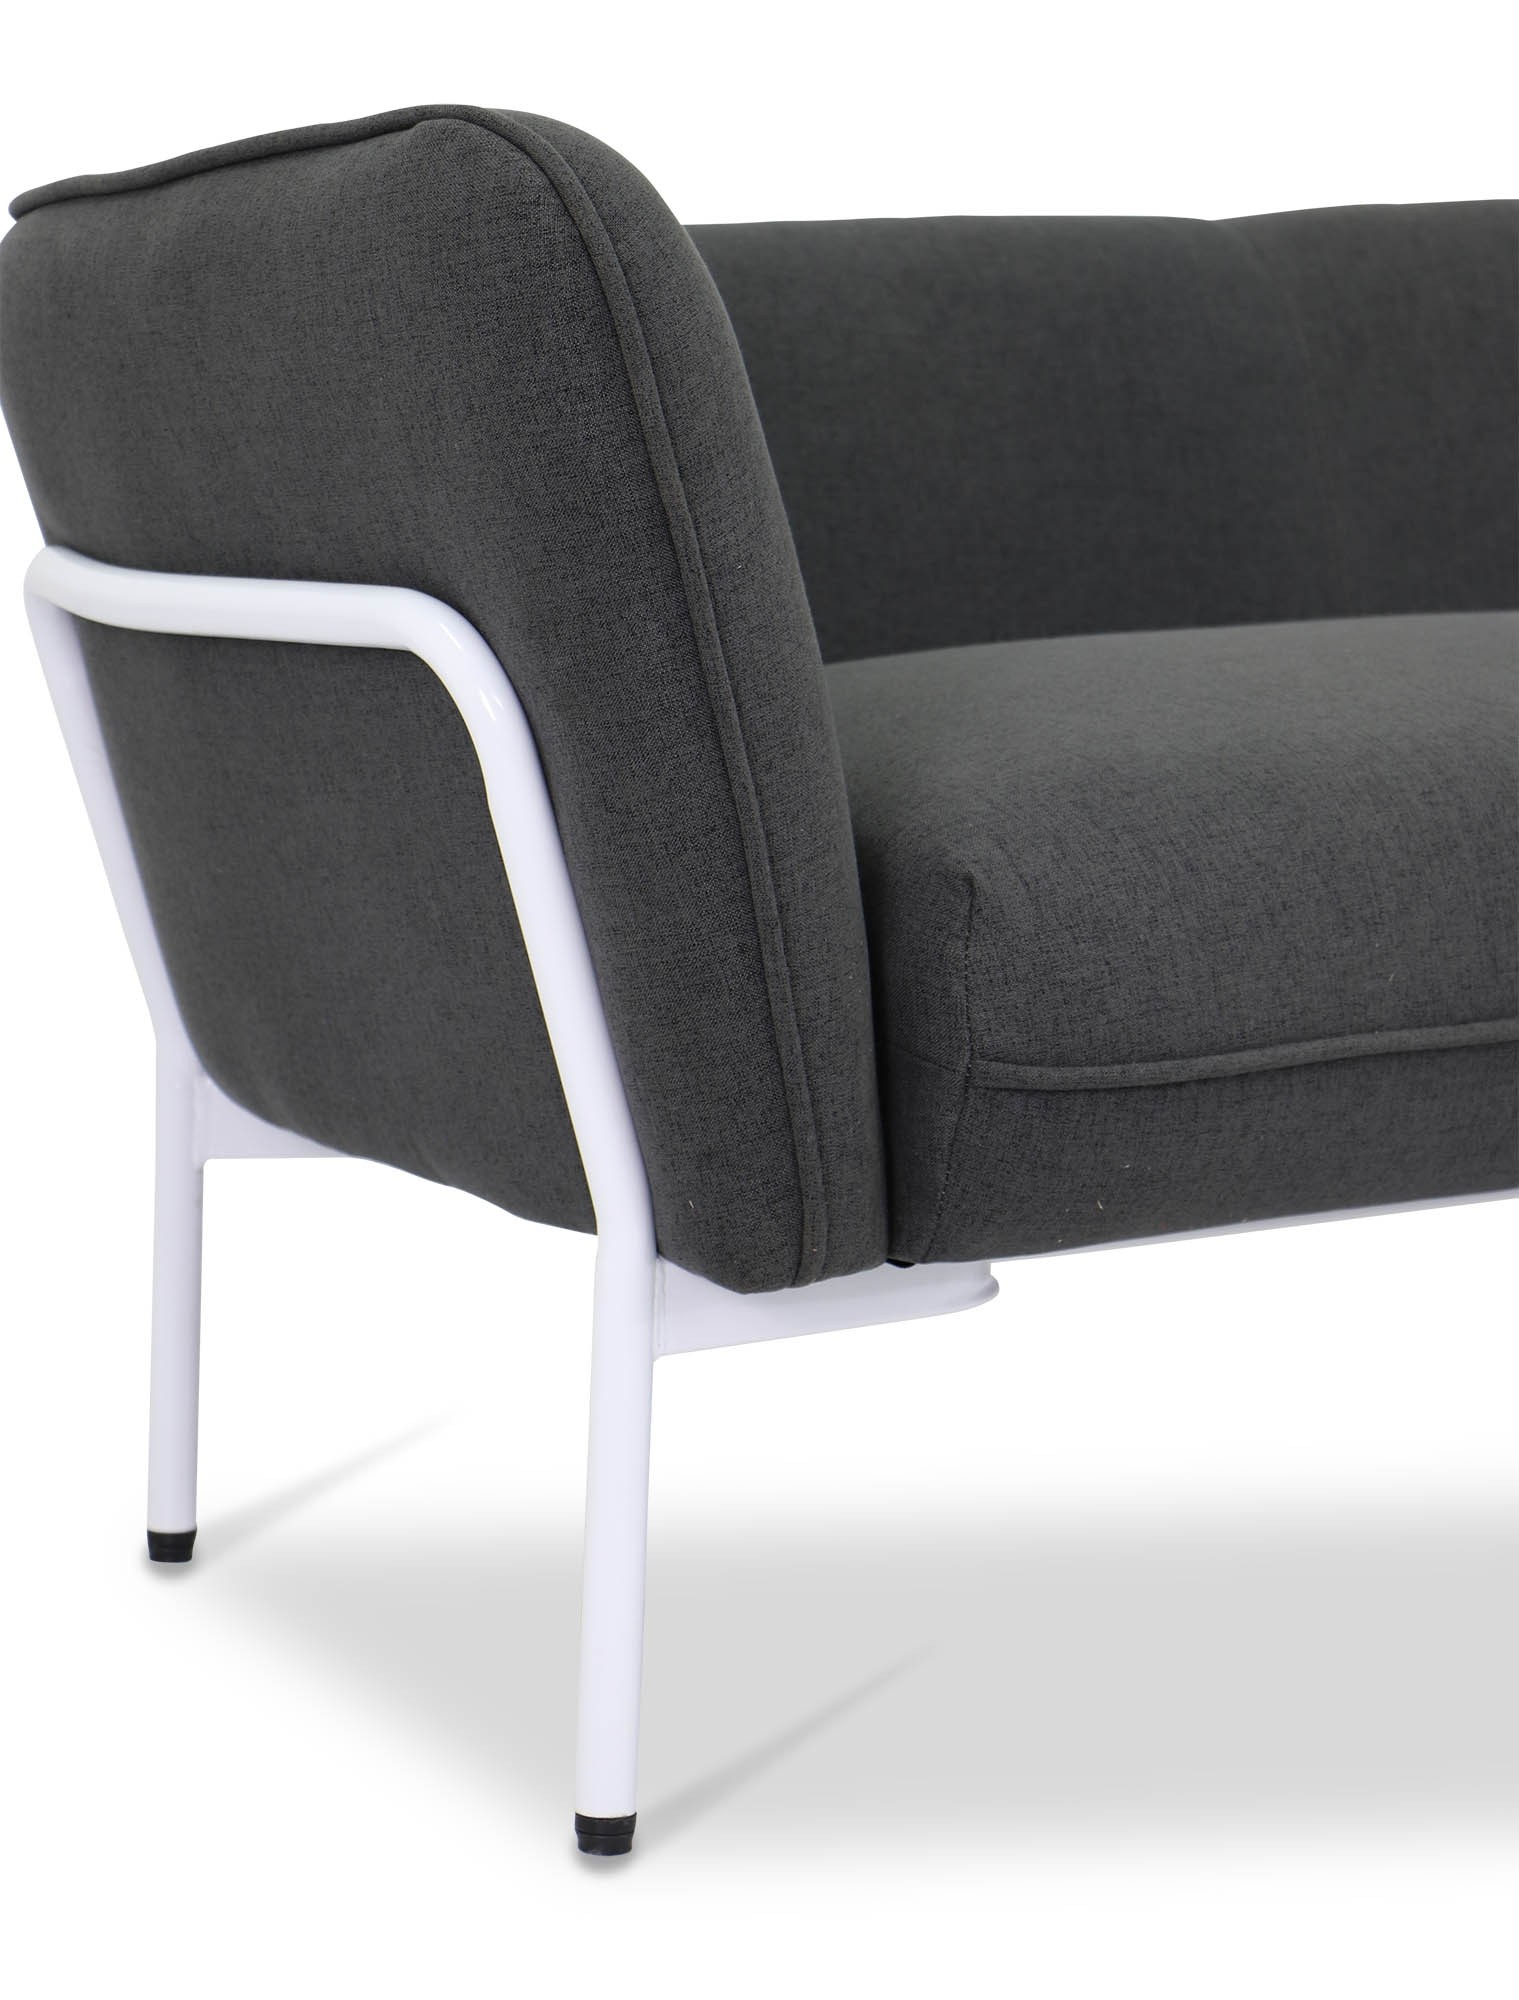 Karen Sofa In Dark Grey With White Iron Stand | Furniture & Home Regarding Karen Sofa Chairs (Image 13 of 20)